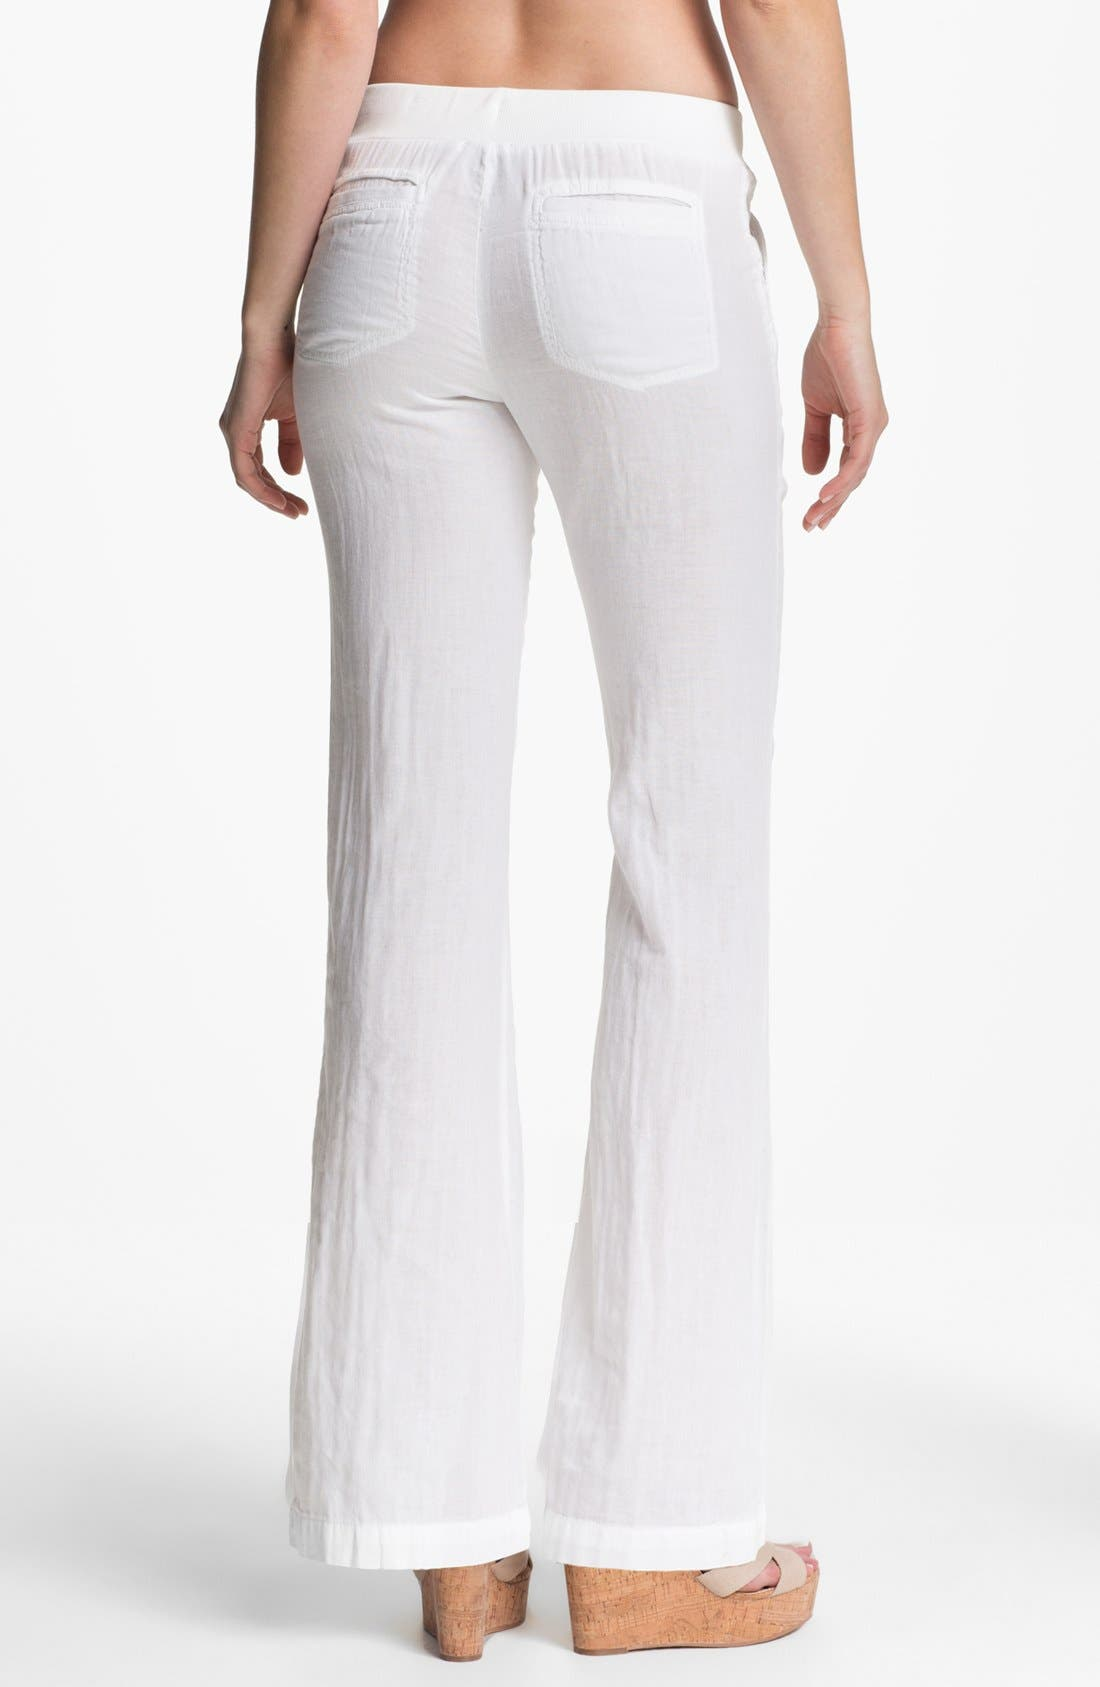 Alternate Image 2  - Splendid 'Hermosa' Drawstring Pants